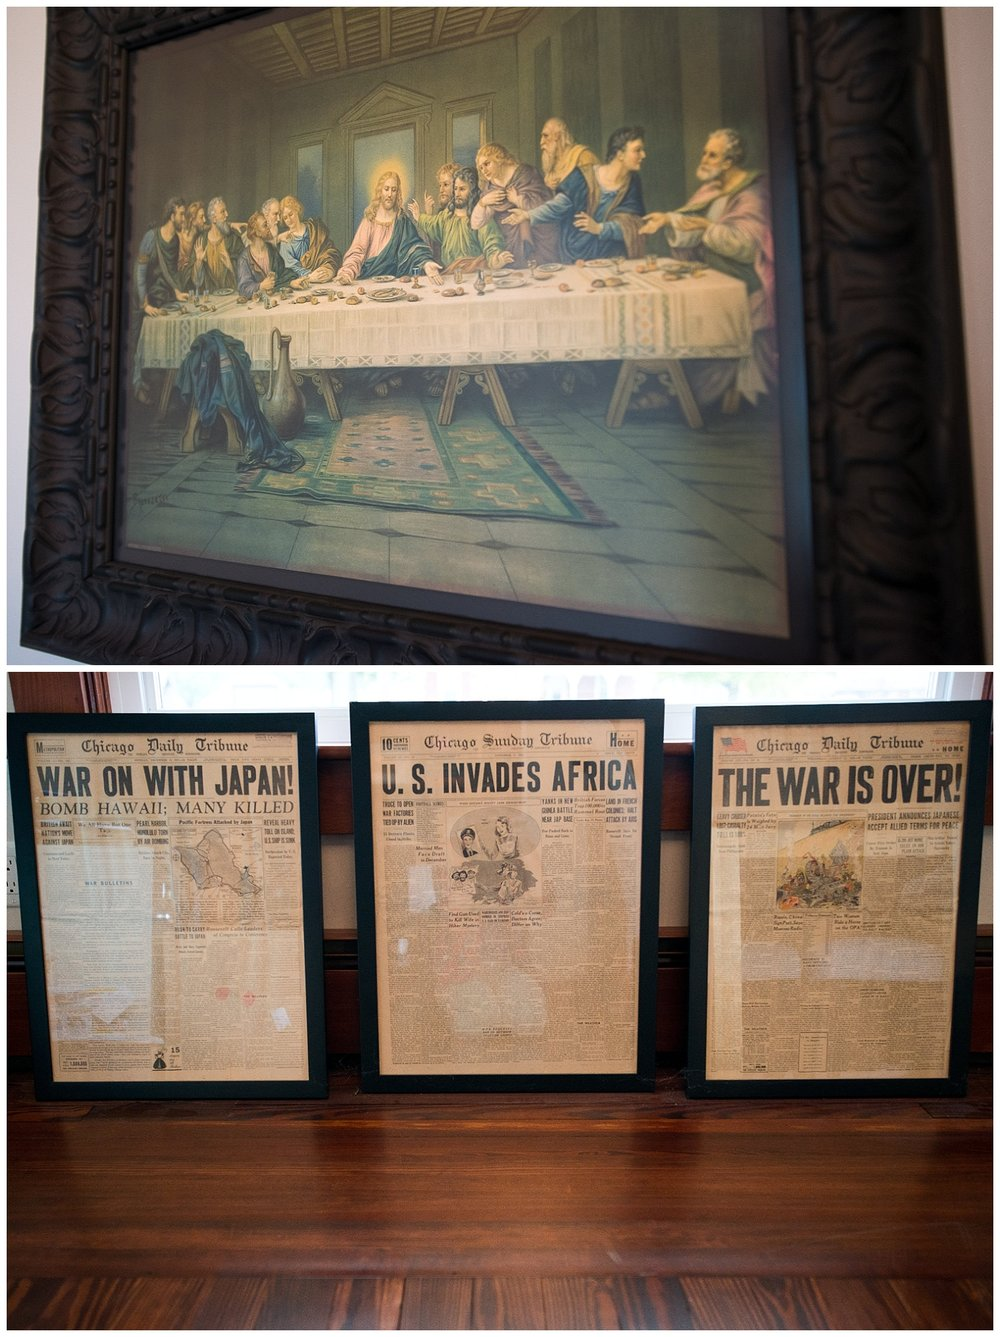 The Last Supper and newspapers from the 1940s belonged to their grandparents.